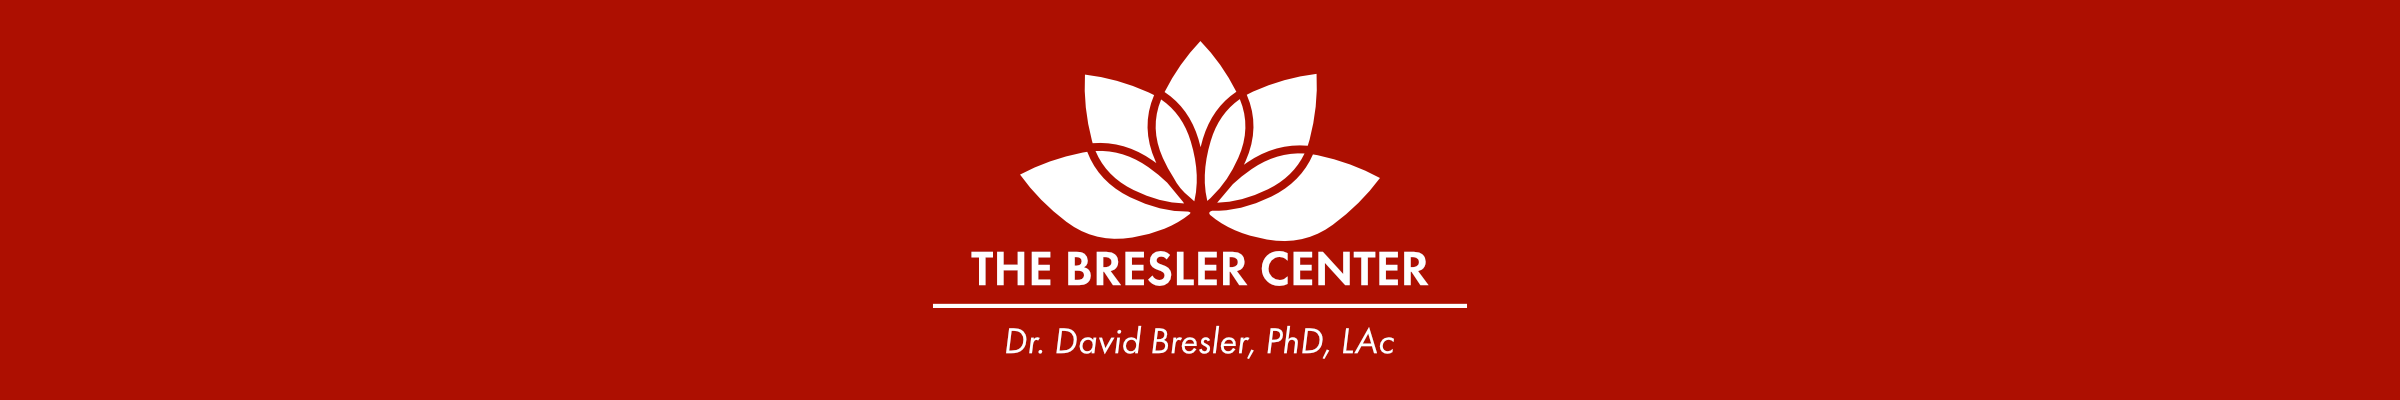 The Bresler Center